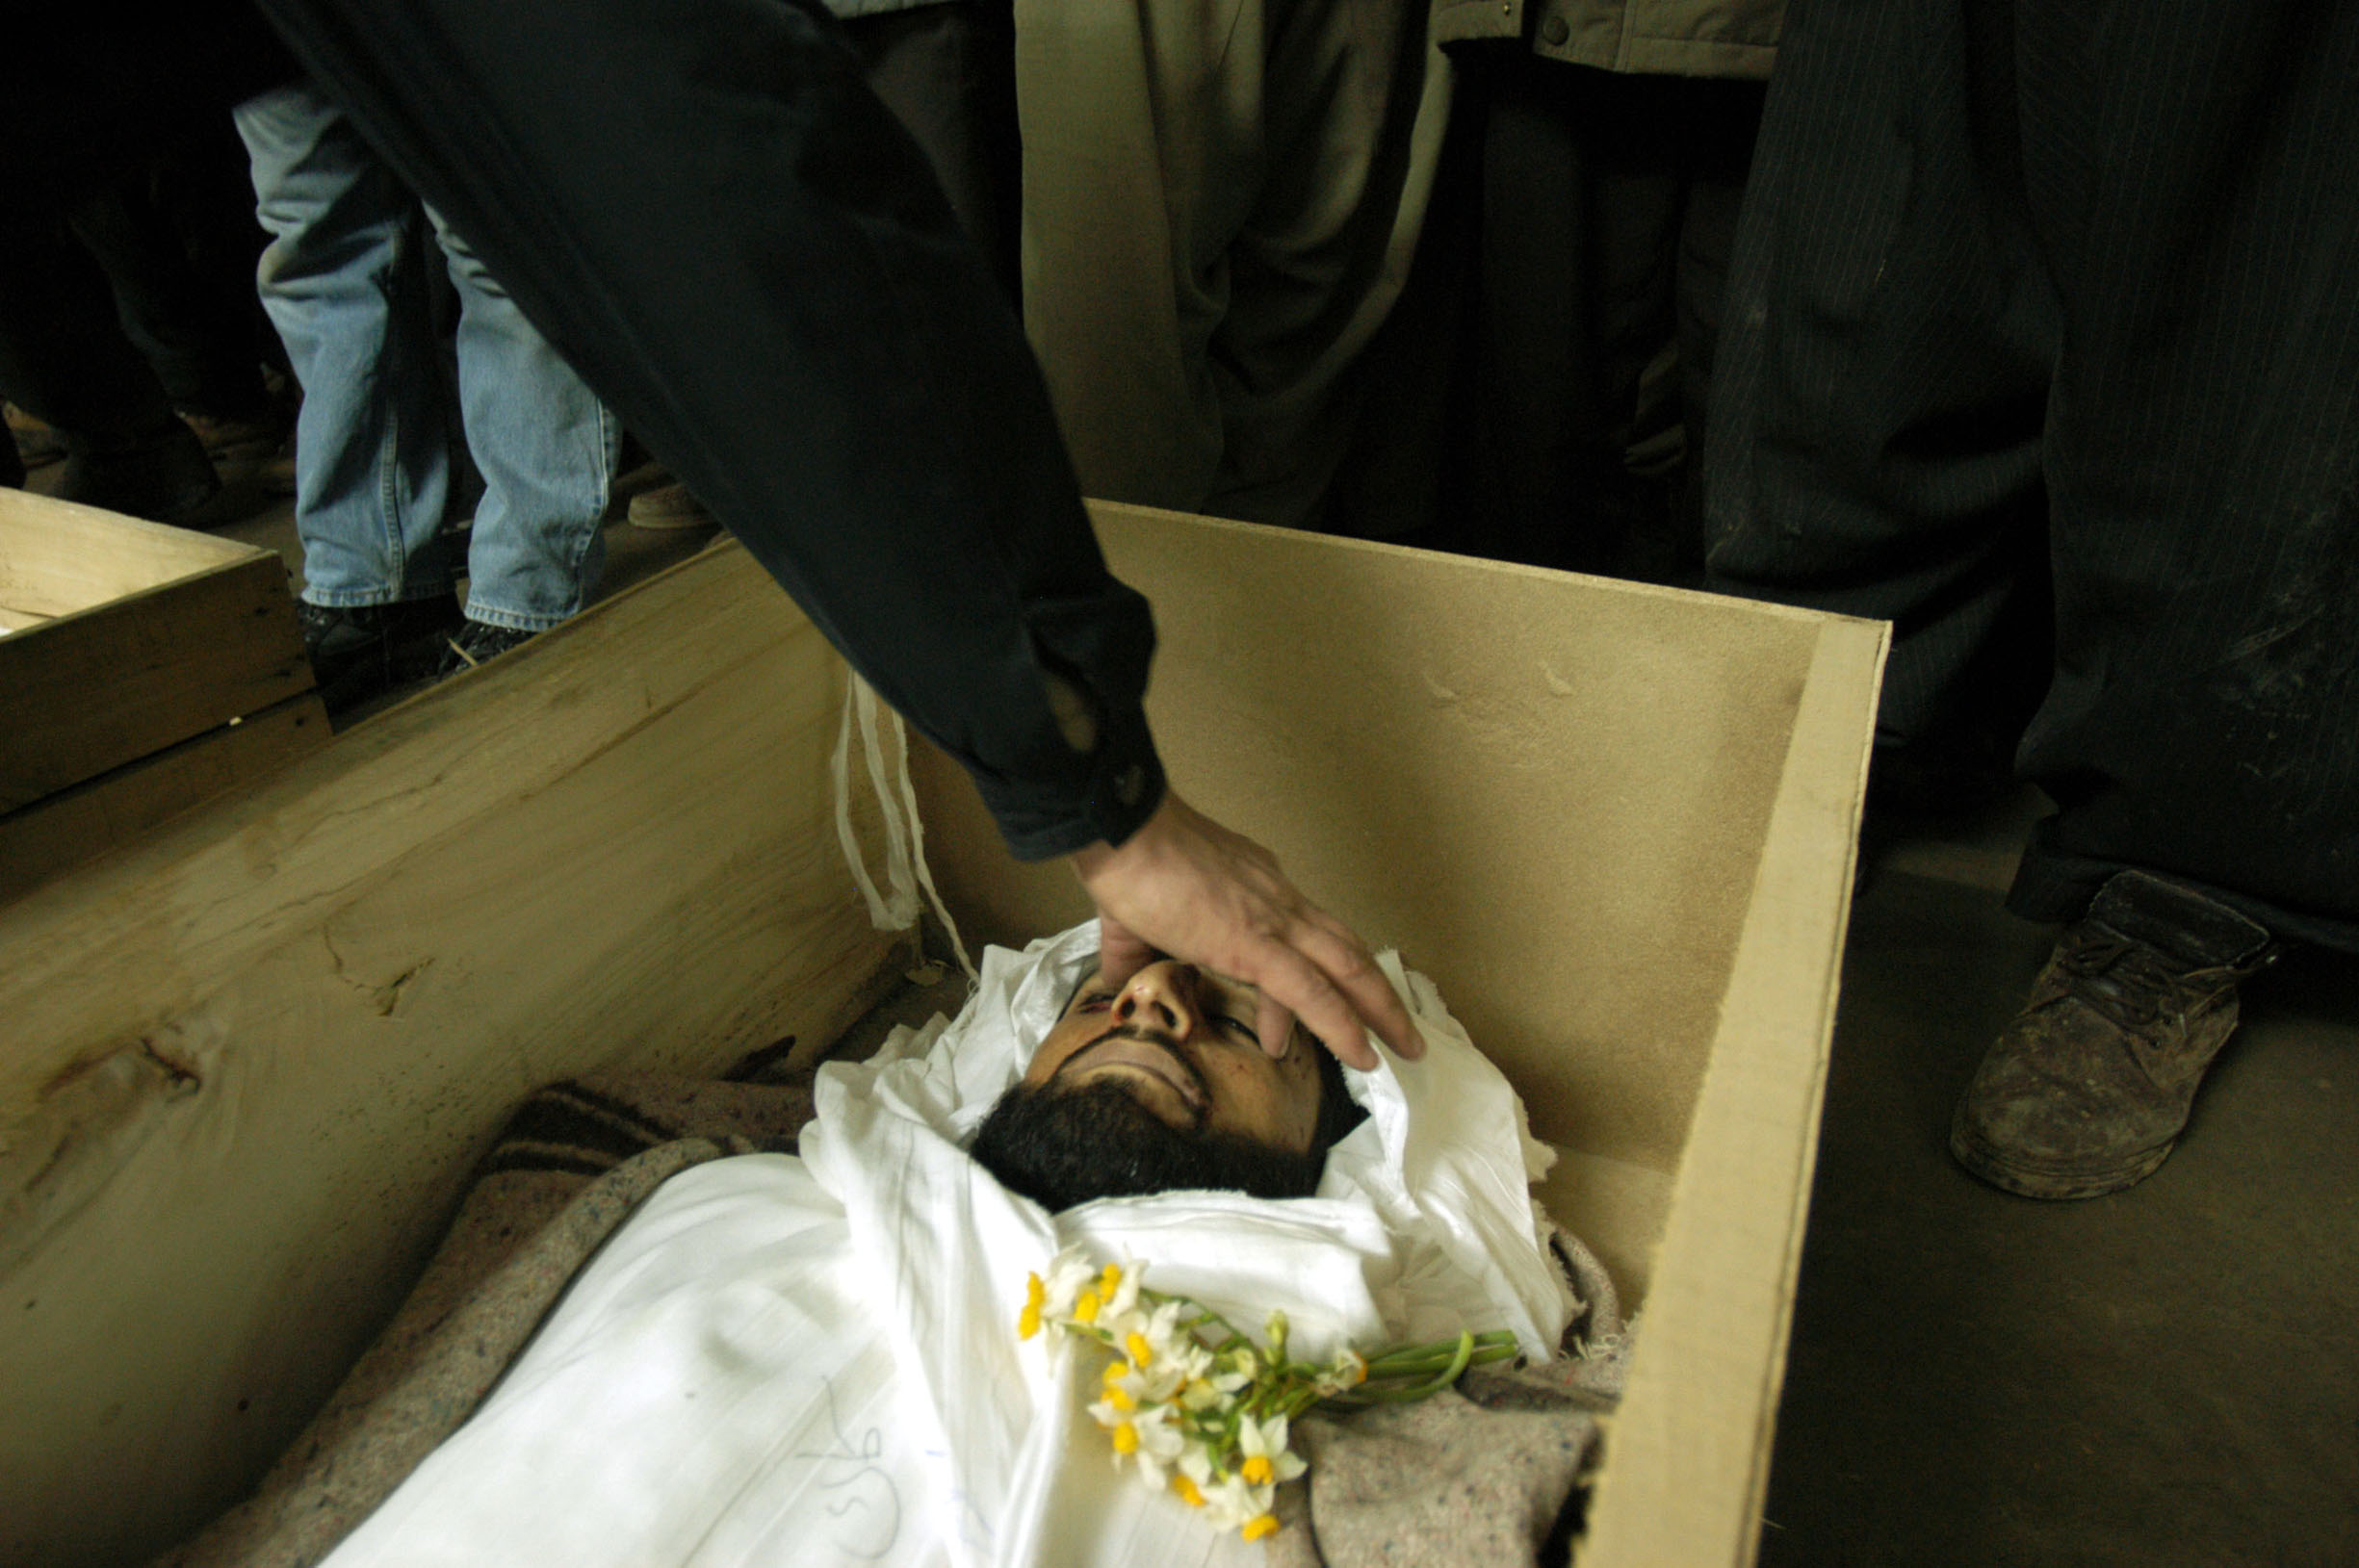 A relative closes the eyelids during the funeral of one of the men killed in a shoot out at a PUK checkpoint in Suleimaniya, Northern Iraq March 5, 2003.  The five men had long beards, and were accused of being Ansar fundamentalists.